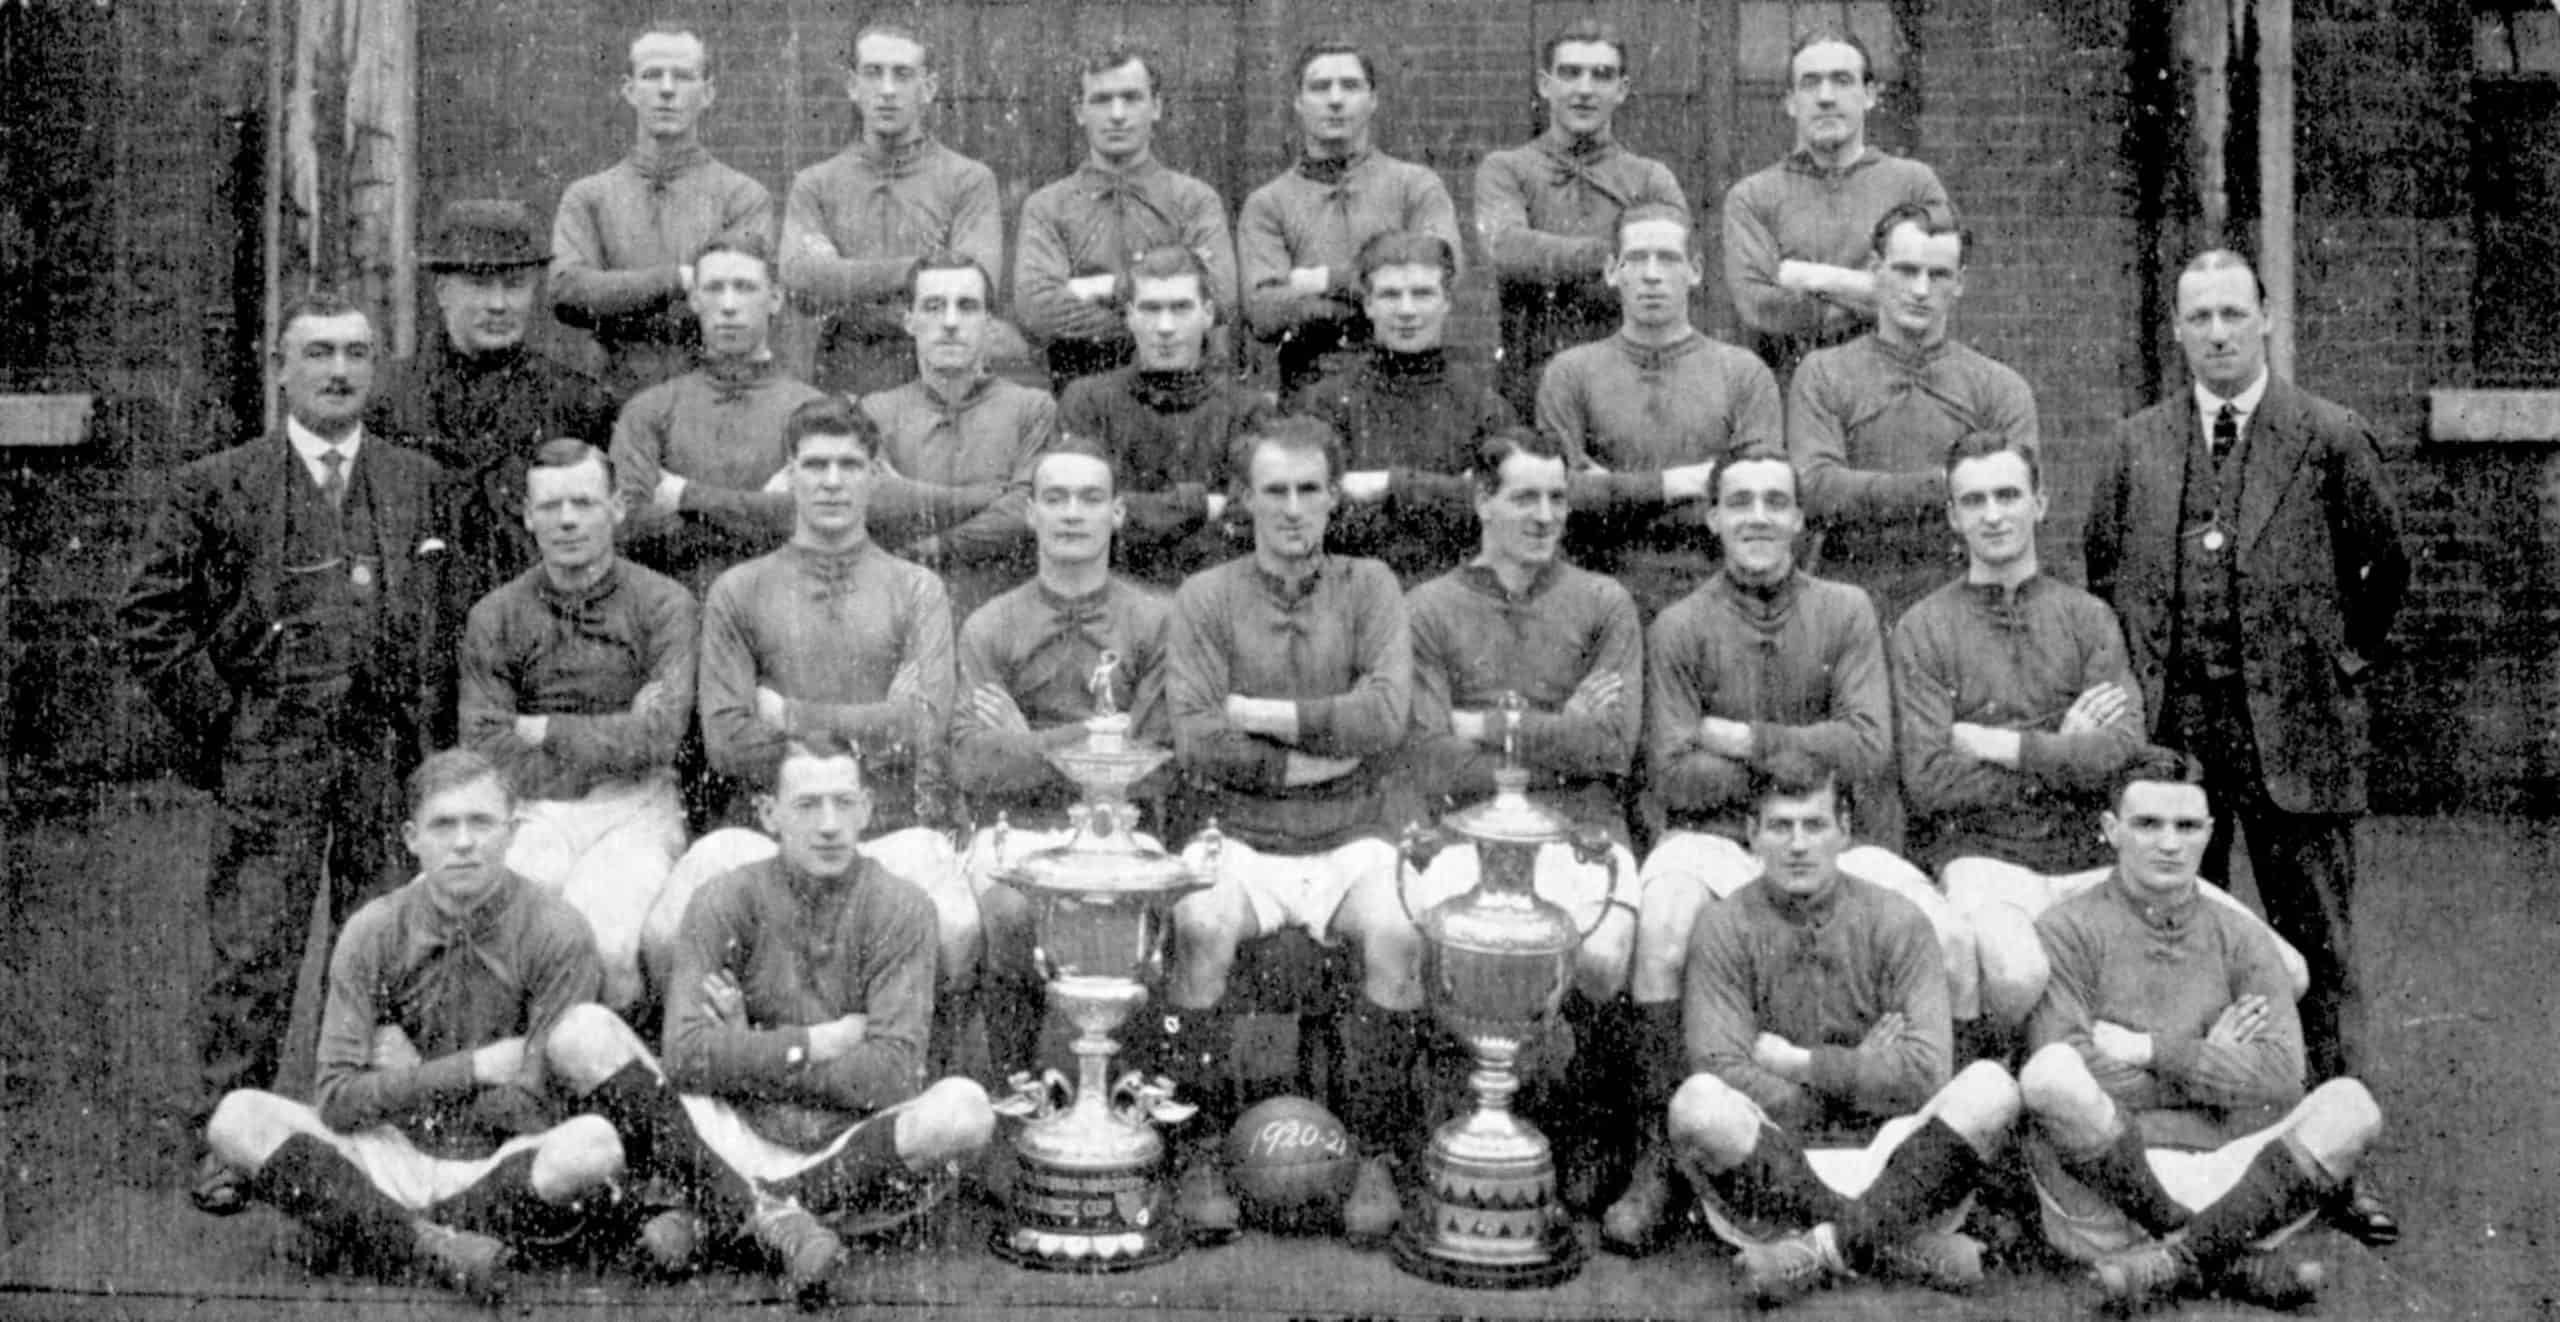 Liverpool team group: (back row, l-r) Dick Johnson, Tom Miller, Willie Cunningham, Jim Penman, Peter McKinney, Billy Lacey (third row, l-r) Trainer W Connell, Dick Forshaw, Harry Chambers, Elisha Scott, Harold McNaughton, Jock McNab, Billy Matthews, George Patterson (second row, l-r) Manager David Ashworth, Jackie Sheldon, Jack Bamber, Tommy Lucas, Ephraim Longworth, Donald McKinlay, Tom Bromilow, Bert Pearson, Secretary (front row, l-r) Jones, Bill Jenkinson, Lancashire Cup, Liverpool Cup, Harry Lewis, Walter Wadsworth